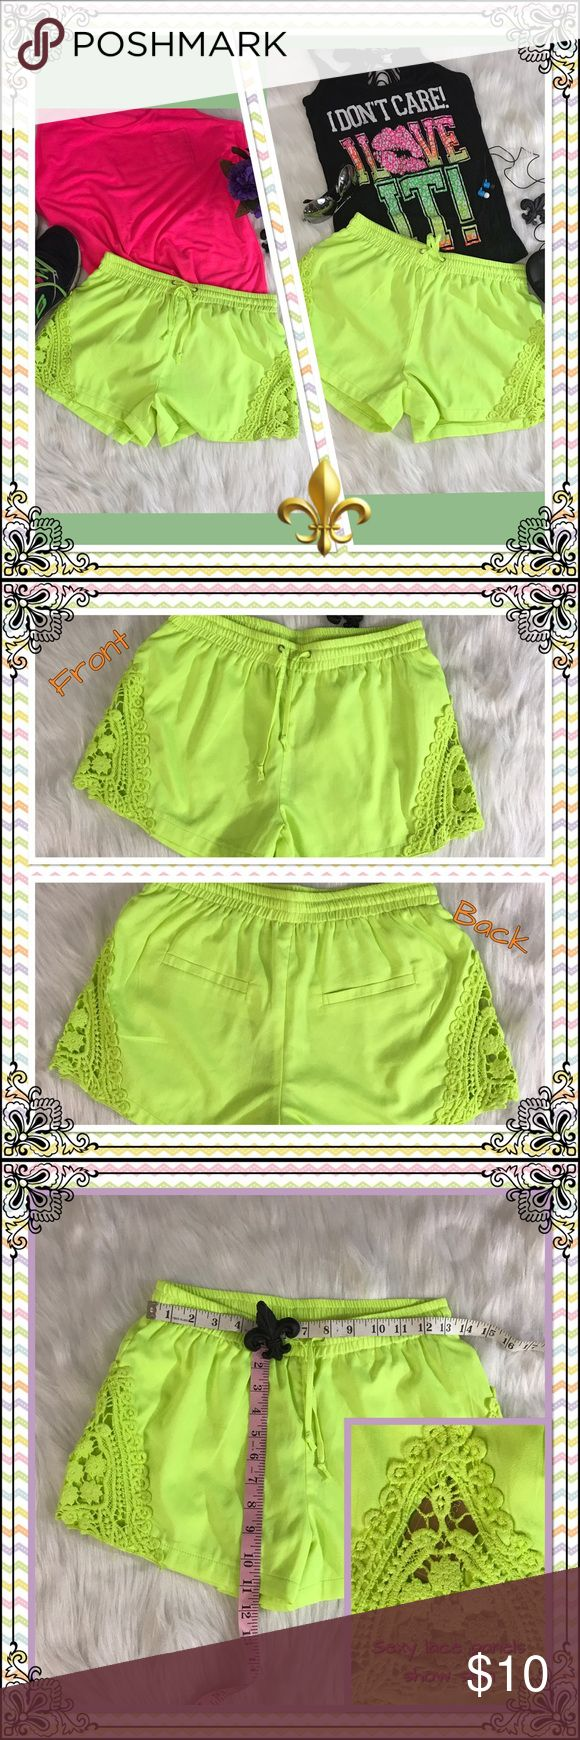 ⚜️NWT! TEA & CUP Neon shorts-Size S/M⚜️ NWT Tea & Cup neon yellow shorts with cut-out side lace detailing. (Sexy detail shows skin behind the lace - see pics above).  Super cute and super versatile!!  ❣️Make me an offer!❣️Bundle for discounts!❣️ Tea n Cup Shorts